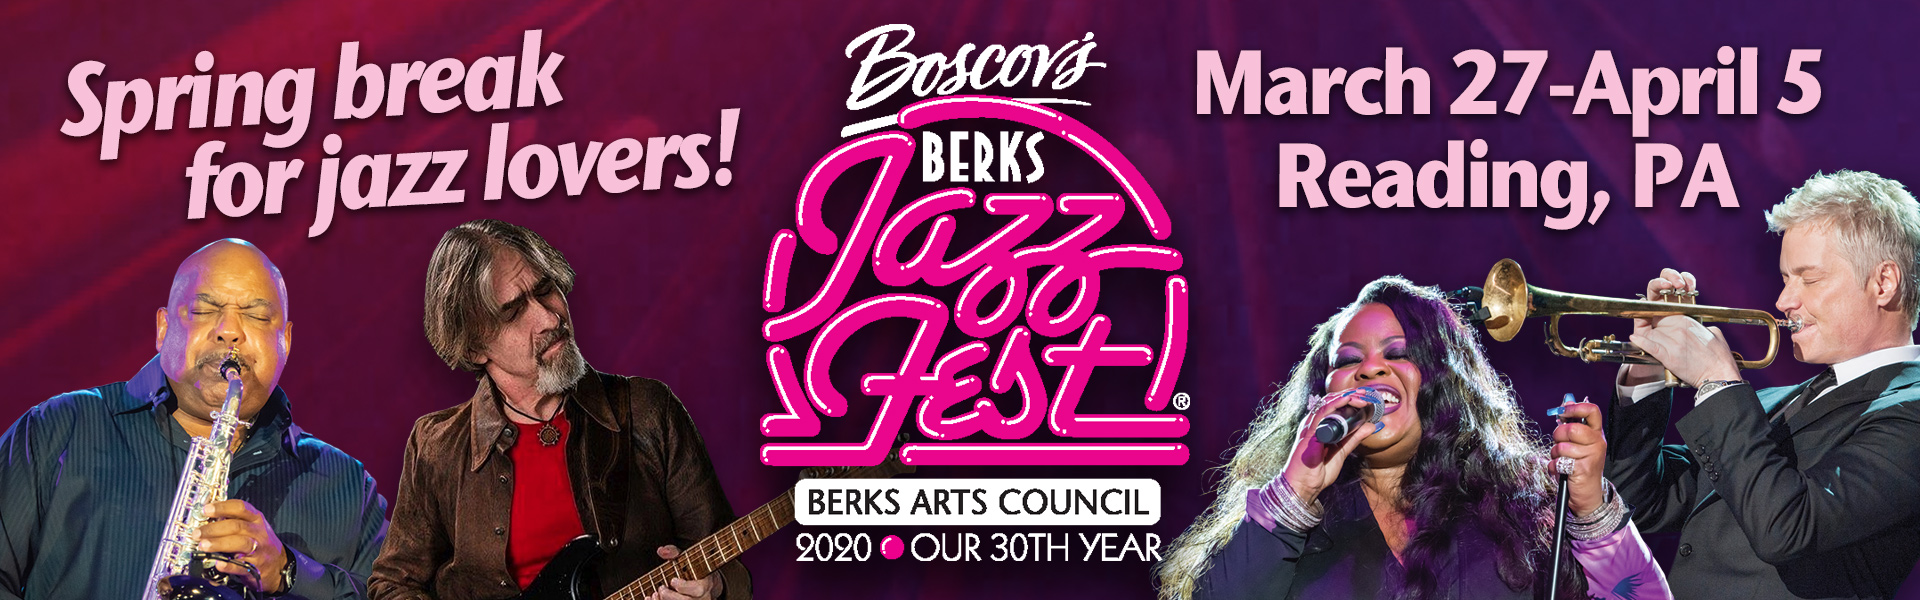 Advertisement for the Annual Berks Jazz Fest with date of March 27 to April 5 2020.